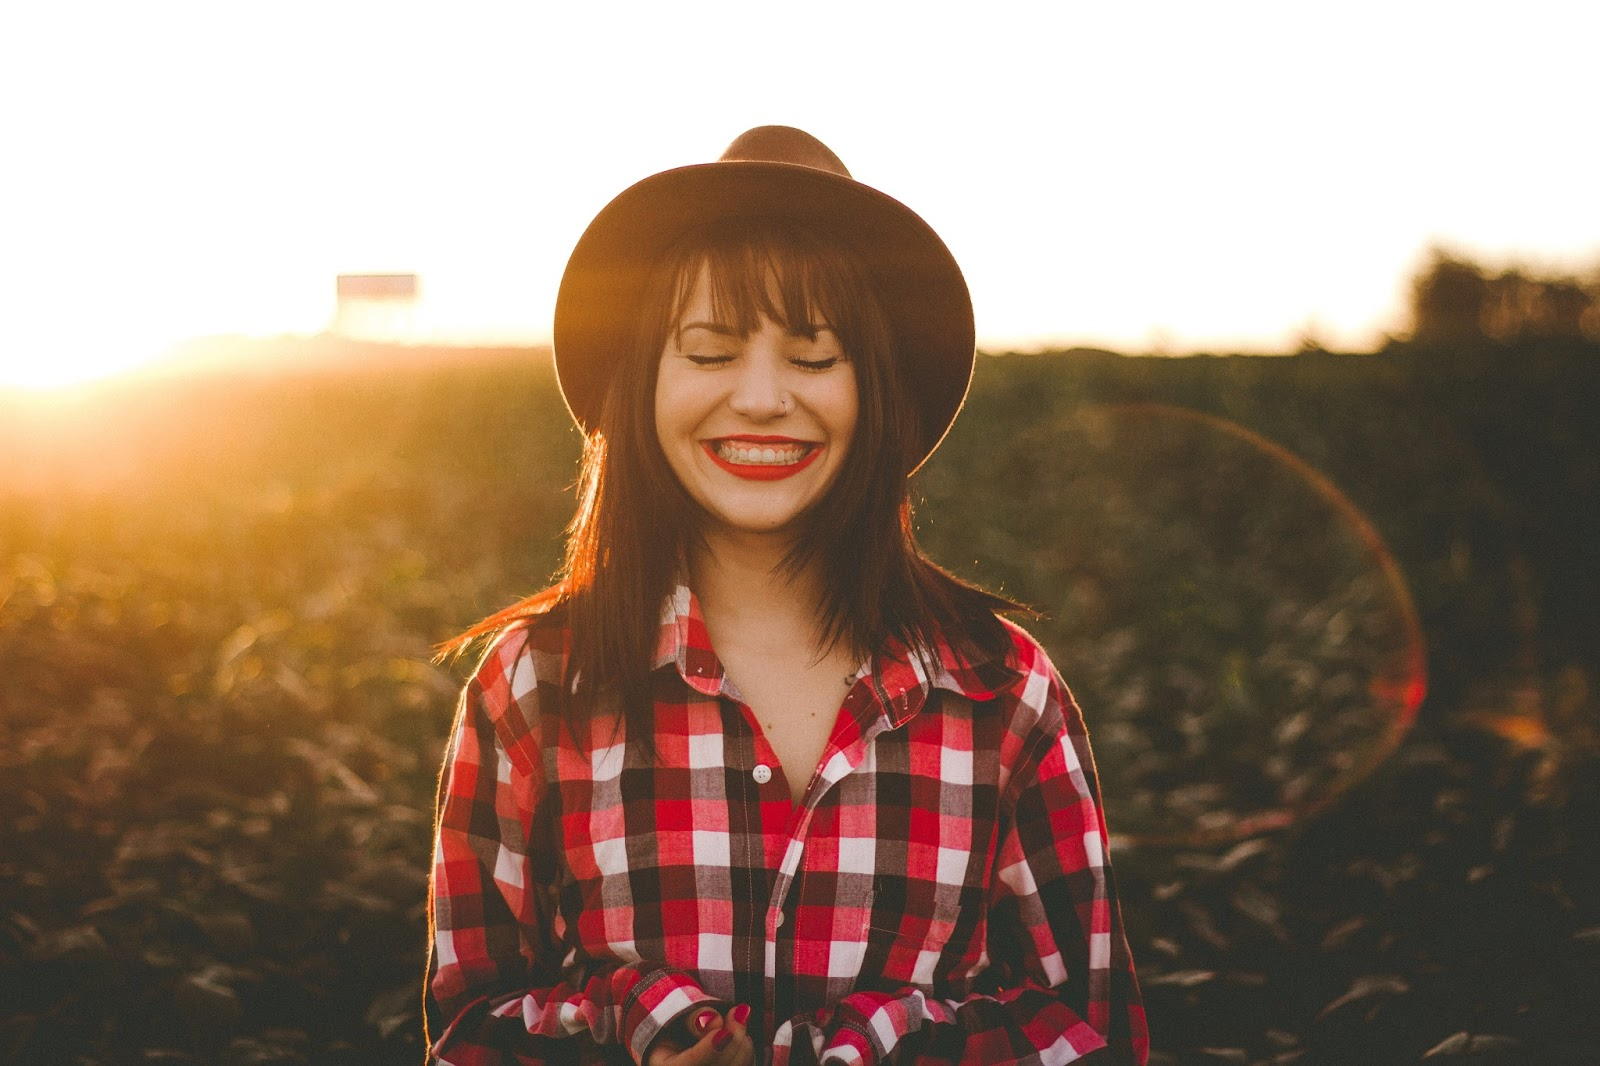 Living your values - smiling girl in a brown hat on a hillside at sunset